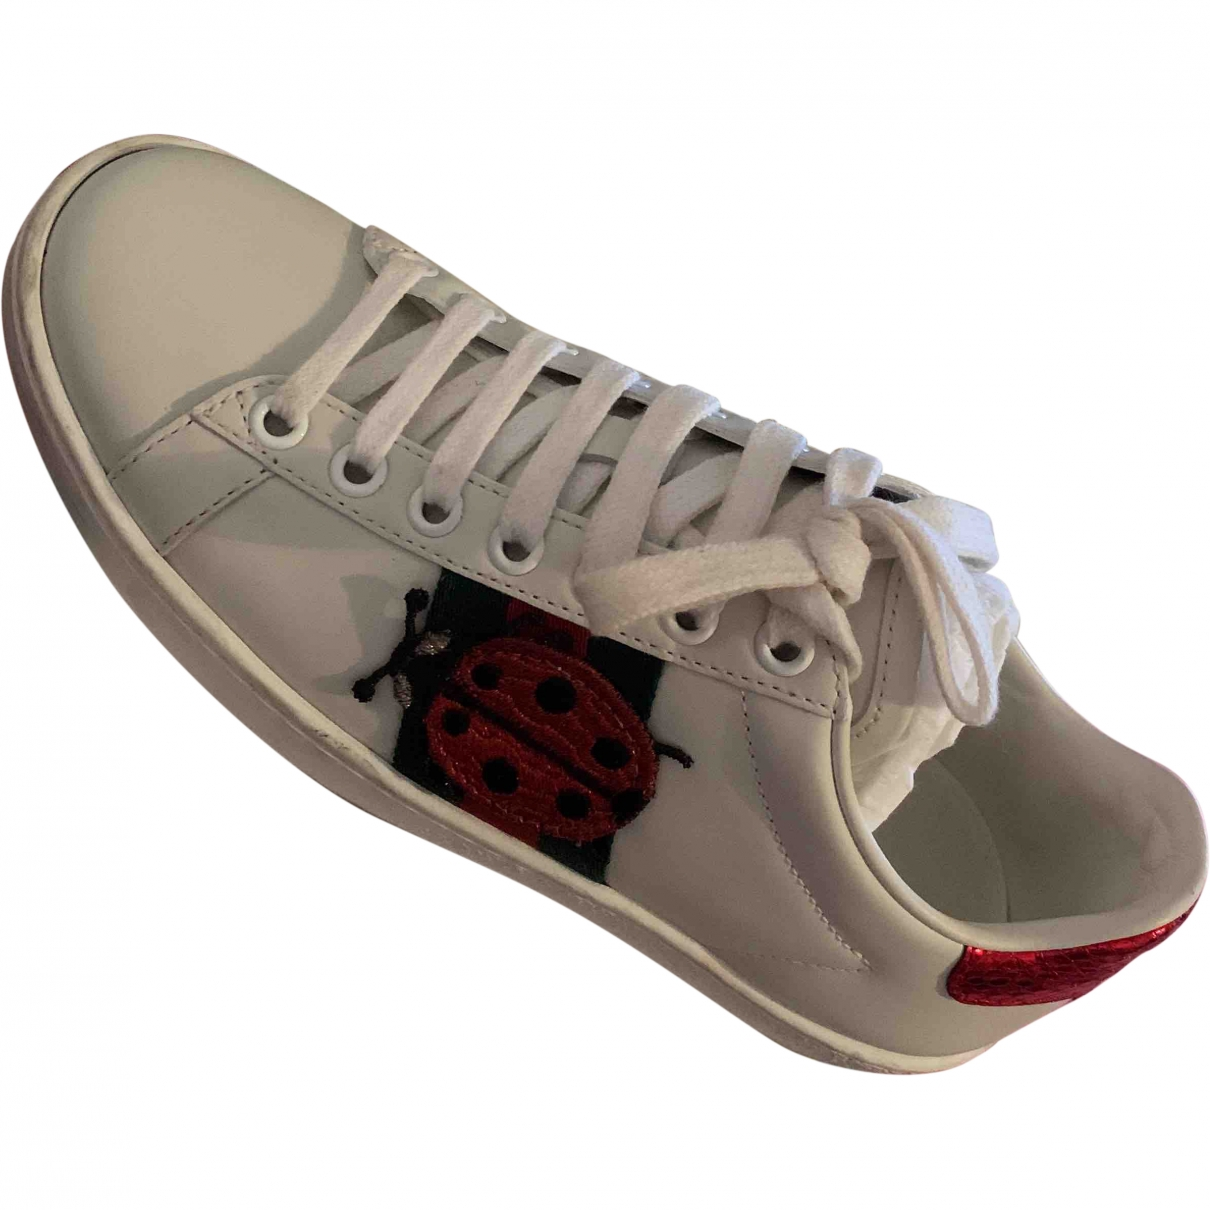 Gucci Ace White Leather Trainers for Women 34 EU